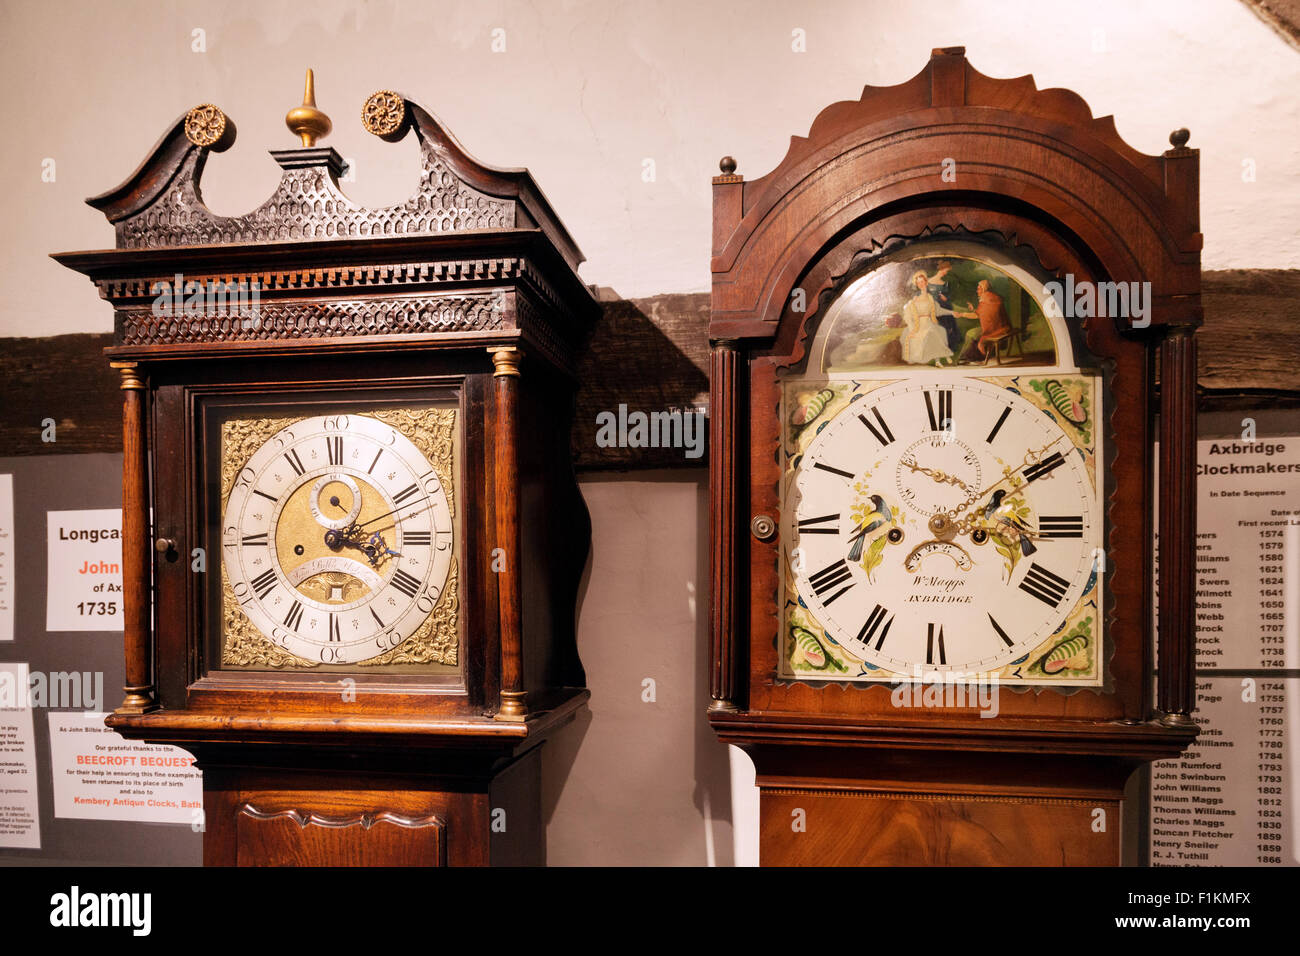 Grandfather Clock Not Pendulum Clock Stockfotos & Grandfather Clock ...